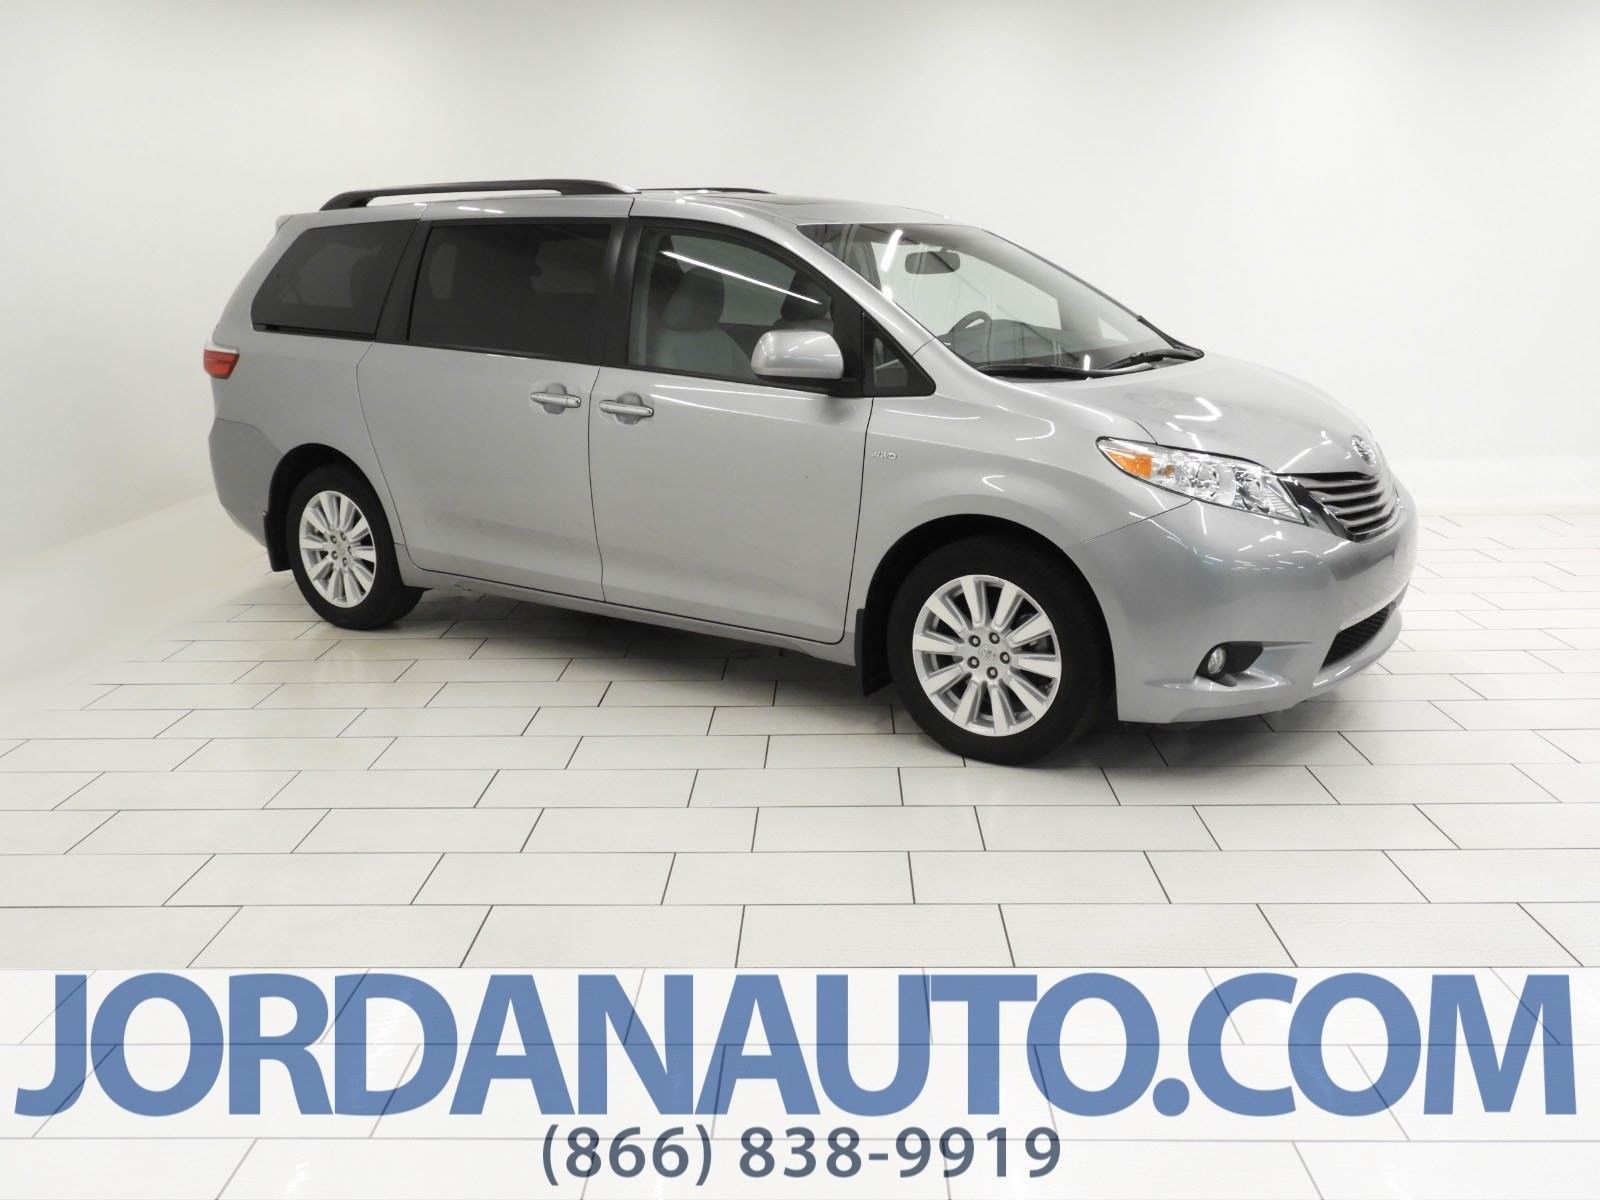 2004 toyota Sienna Parts Diagram Certified Pre Owned 2017 toyota Sienna Xle Mini Van Passenger In Of 2004 toyota Sienna Parts Diagram New 2018 toyota Sienna Le 4d Passenger Van In Naperville T